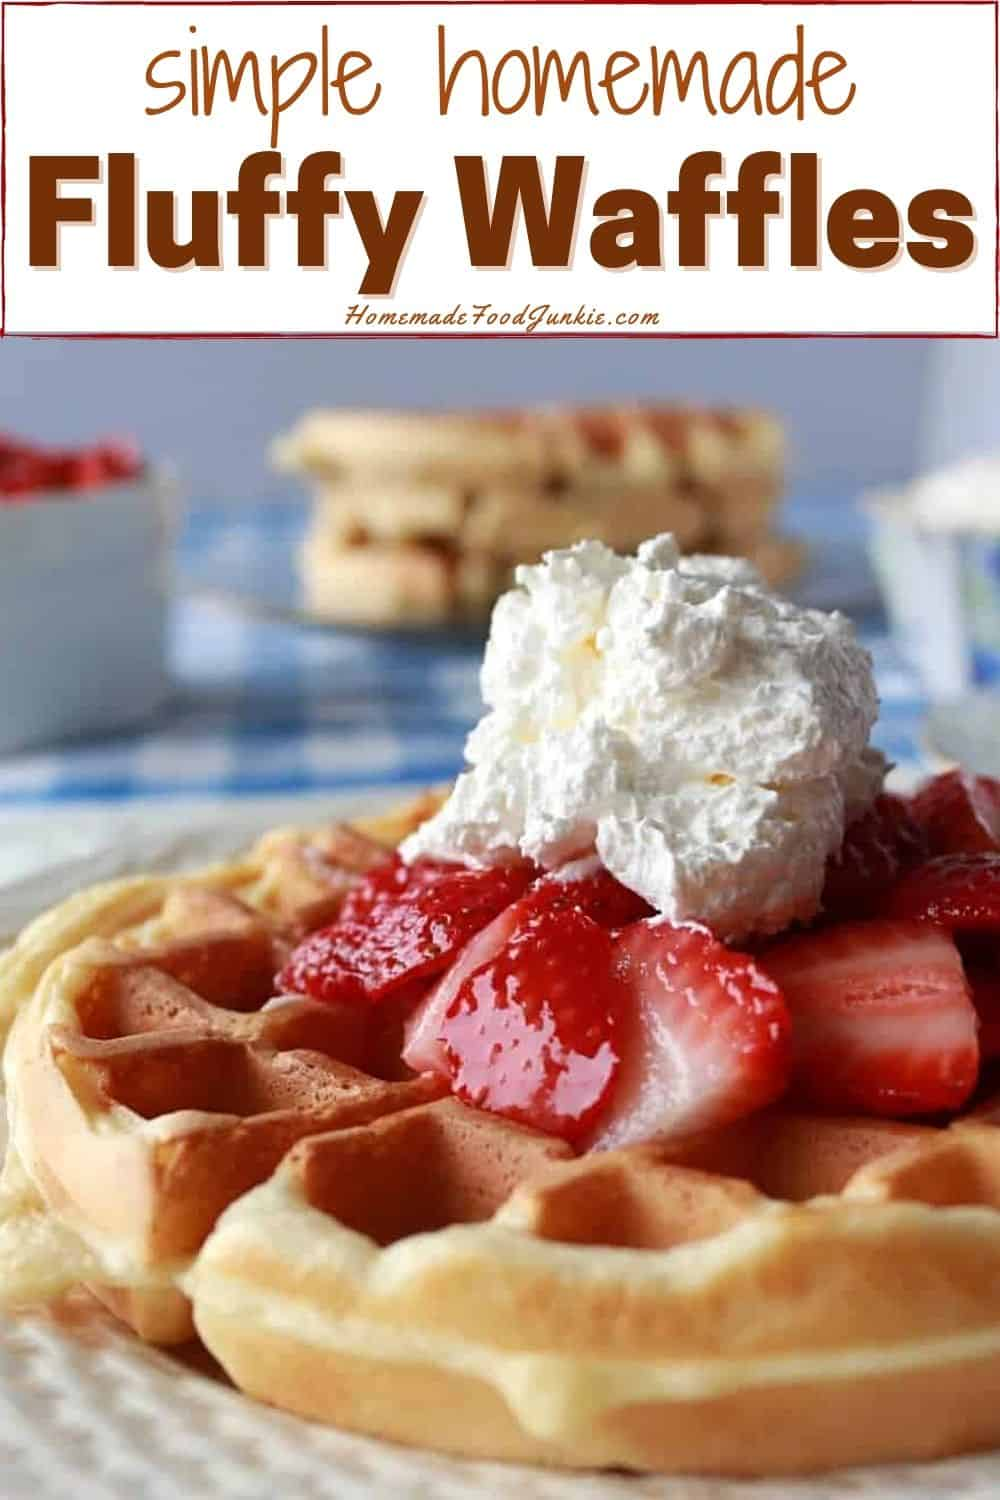 Simple homemade fluffy waffles-pin image